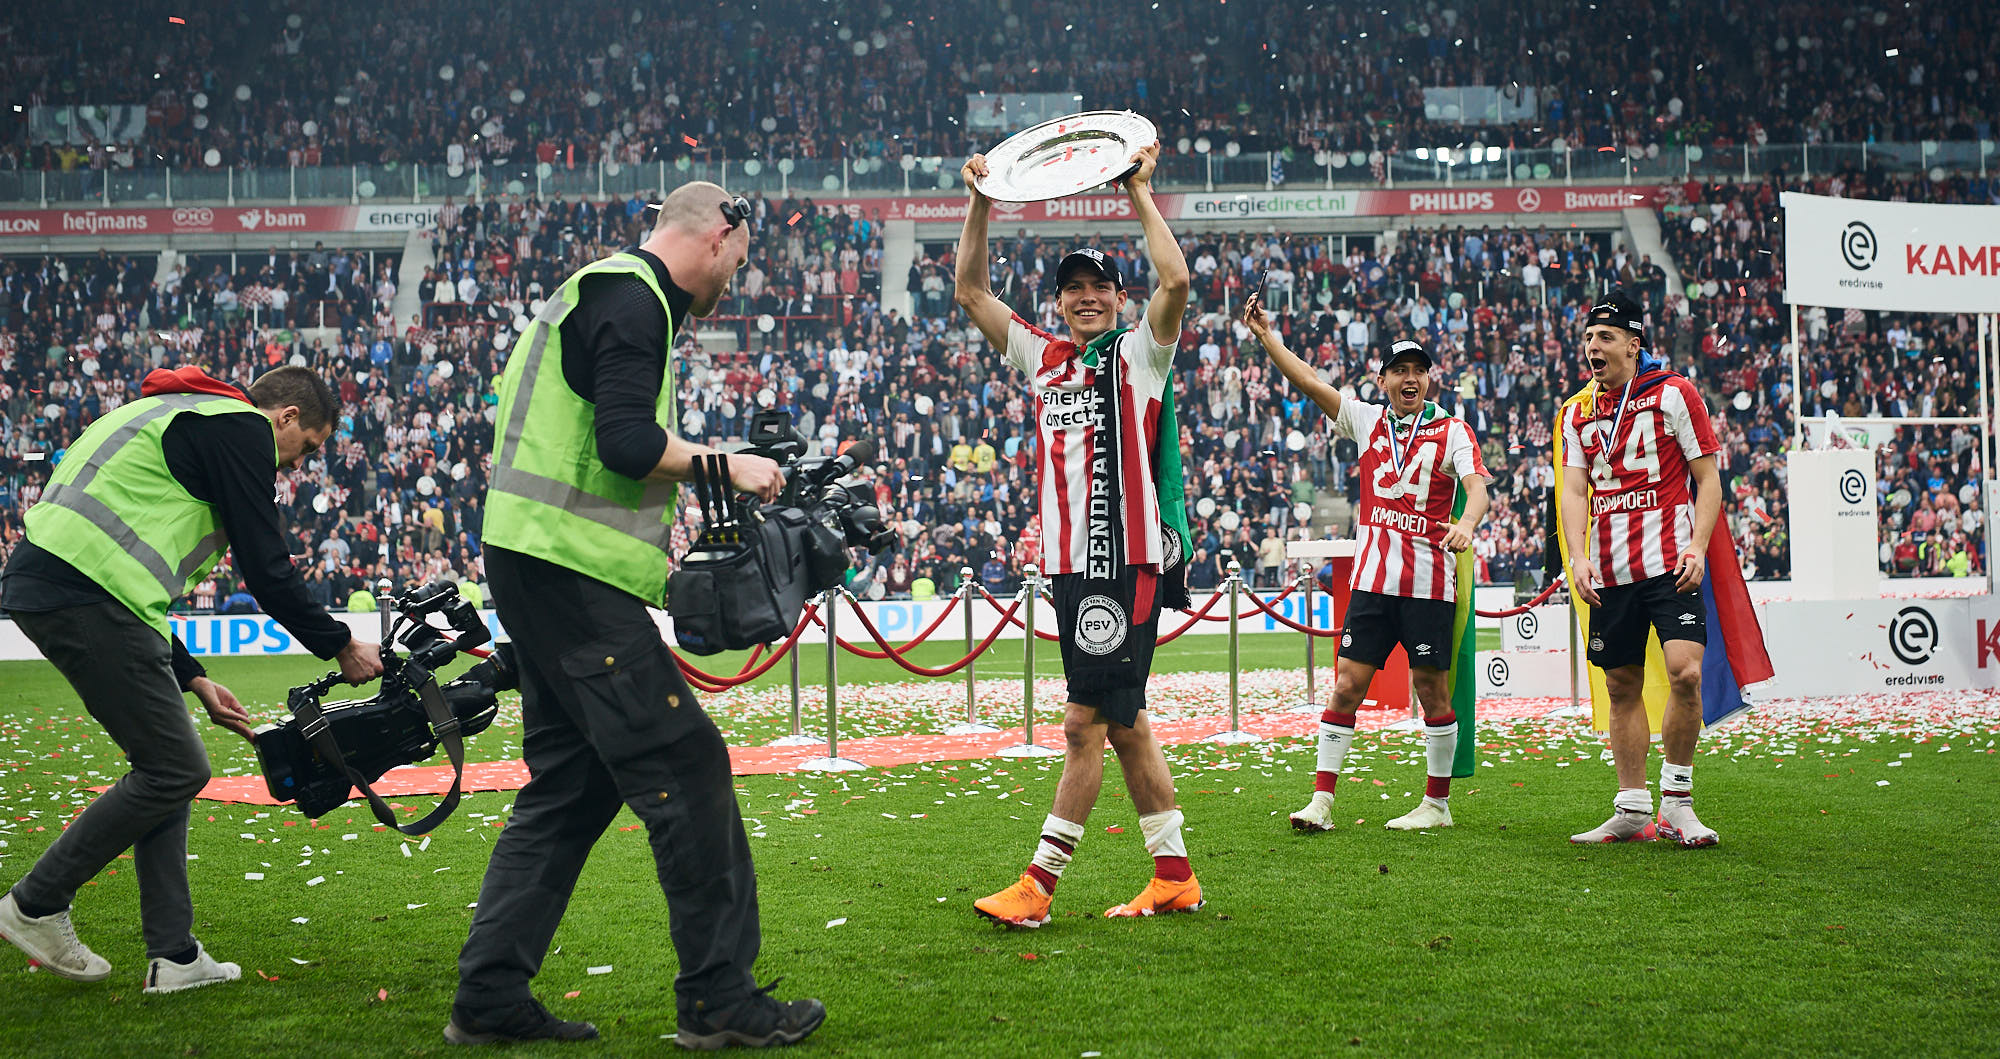 Mexican winger Hirving Lozano with the Dutch Eredivisie trophy in the Philips Stadium in Eindhoven